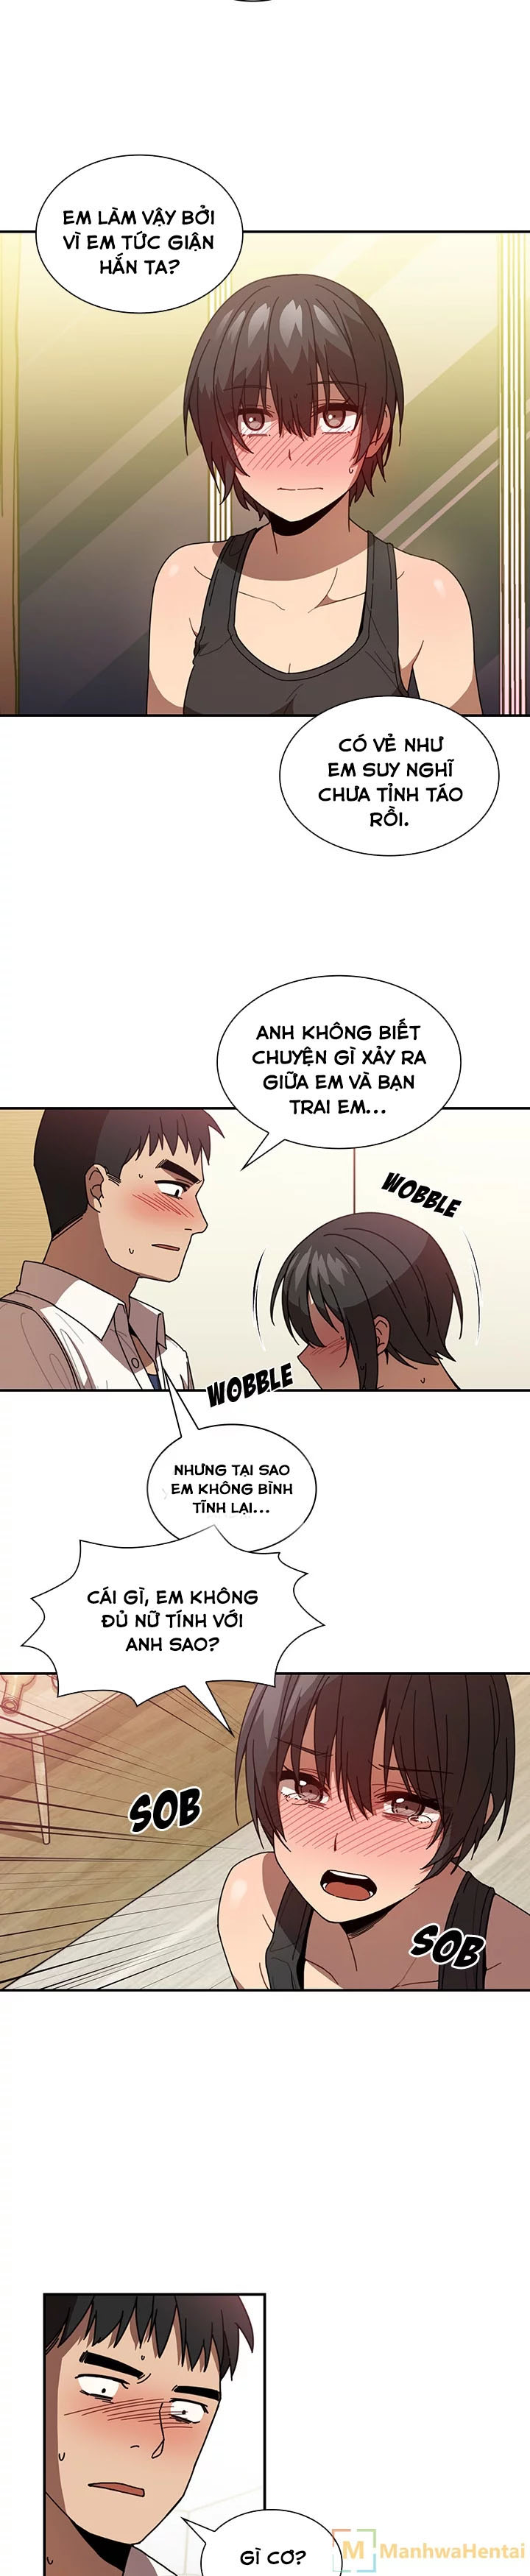 Close as neighbors chap 18 - Trang 11